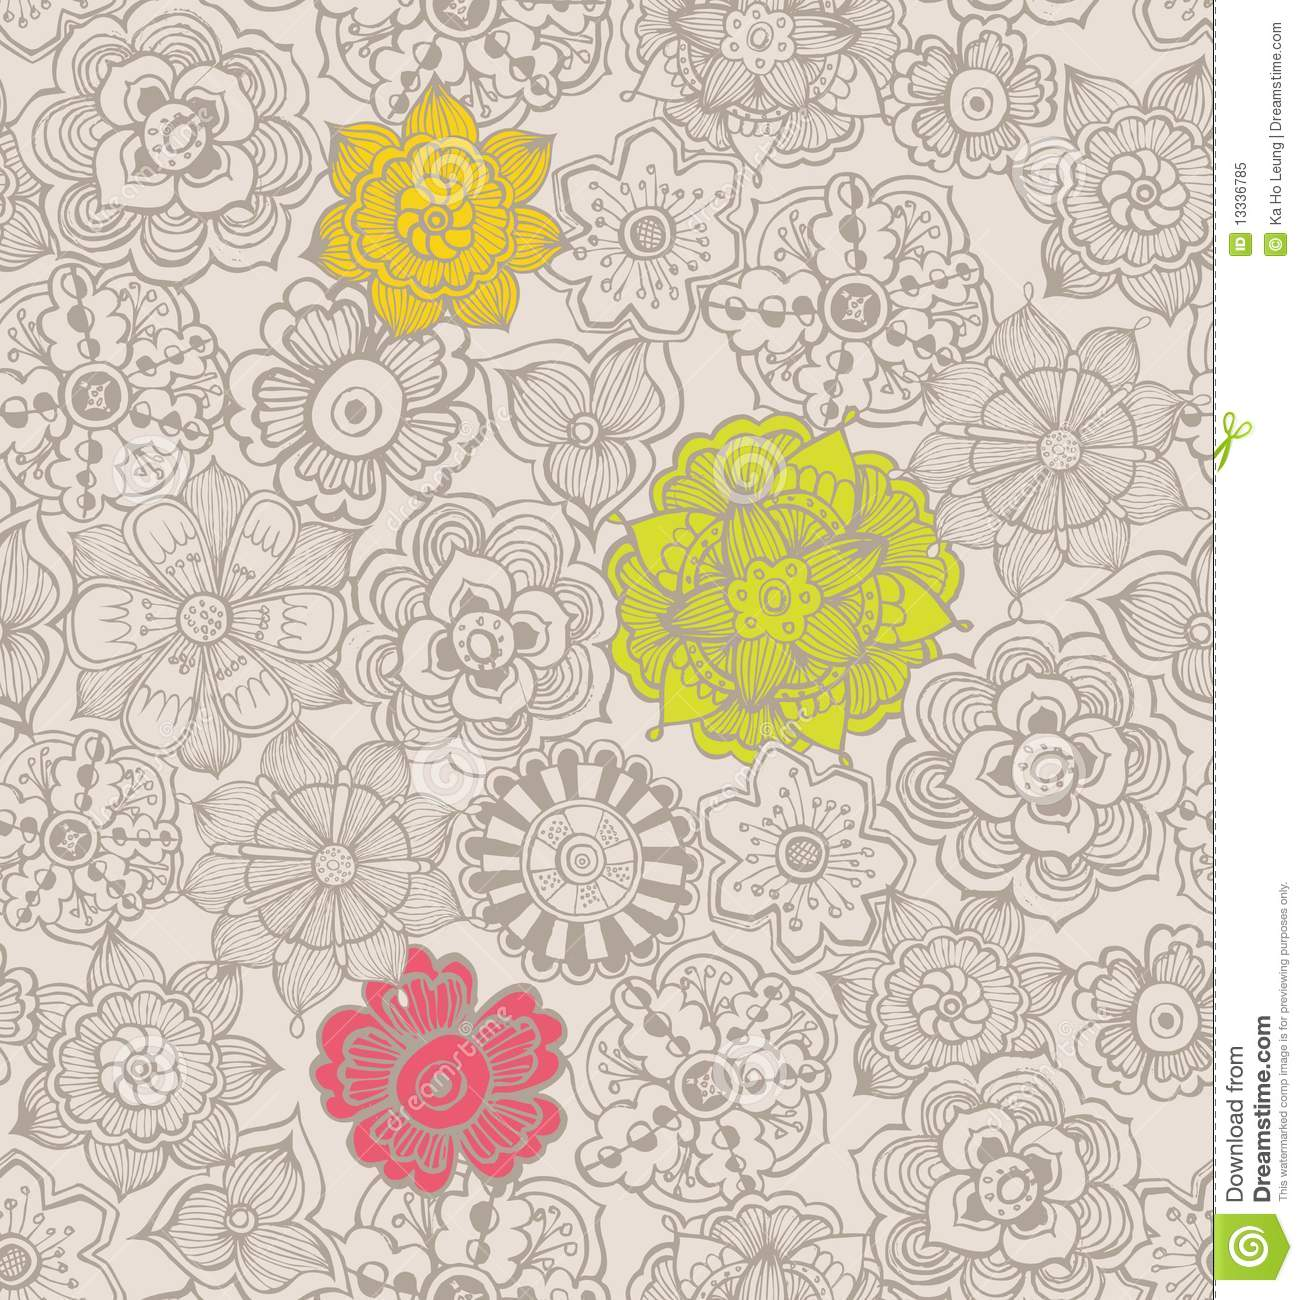 Free abstract floral pattern thanks. You